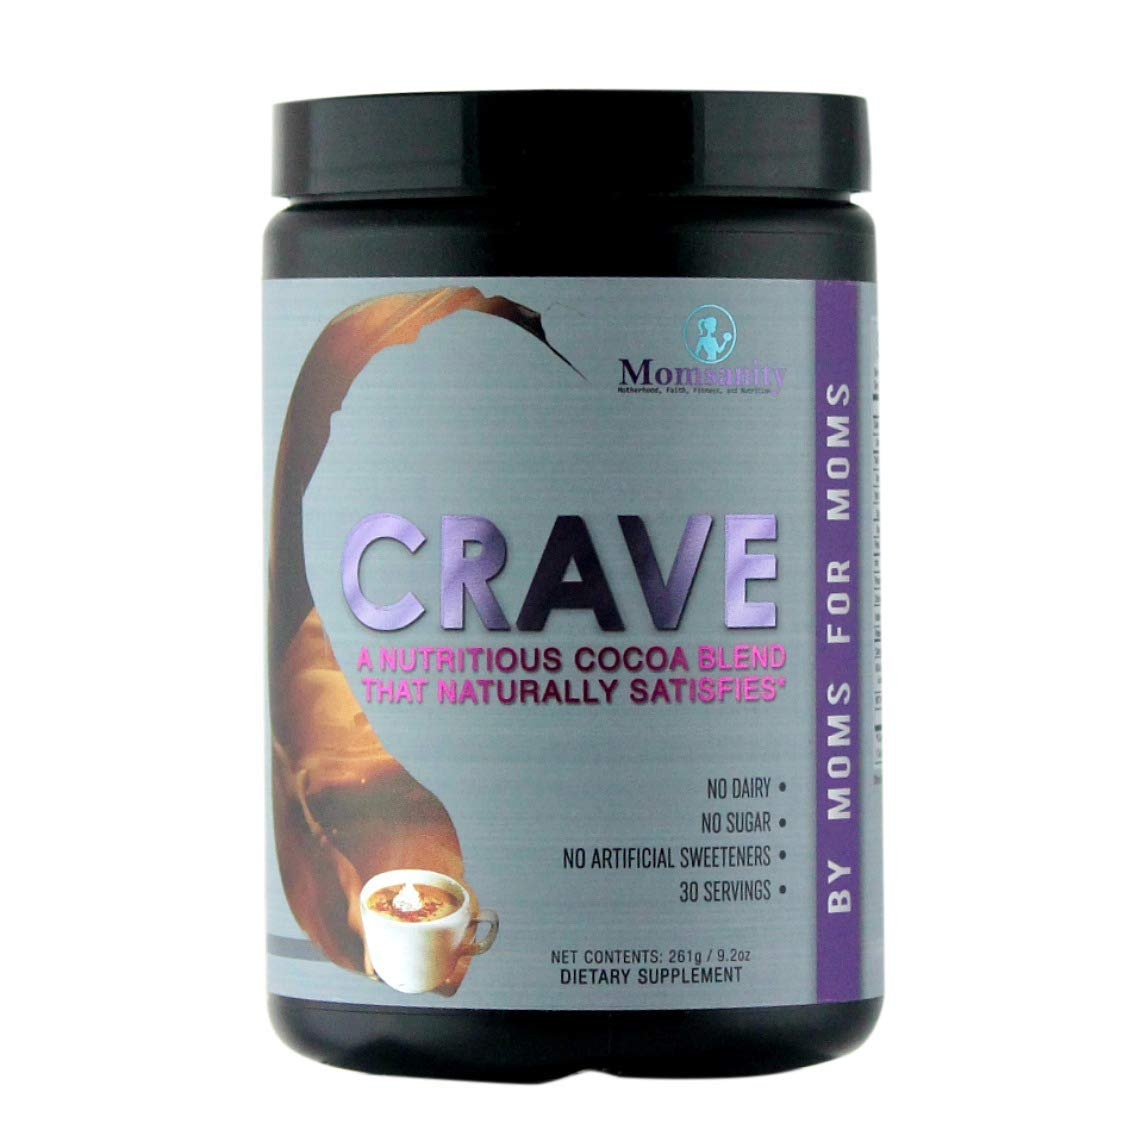 Crave: A Nutritious Cocoa Blend that Naturally Satisfies - 30 servings by Momsanity